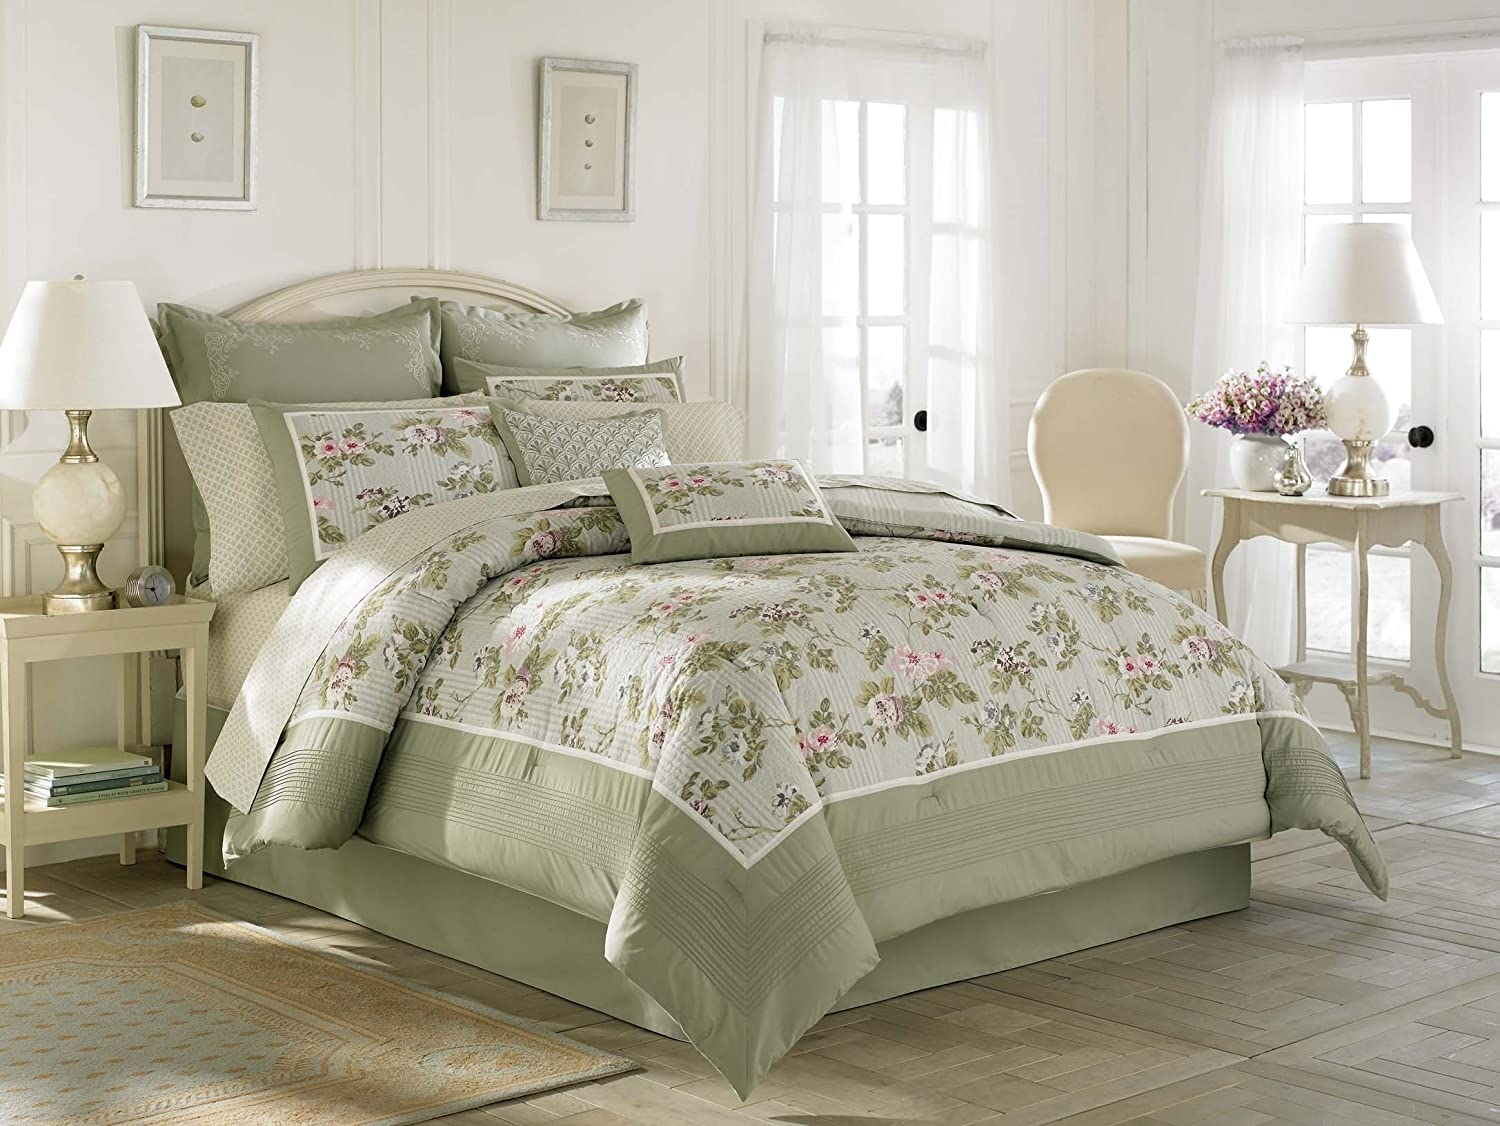 Laura Ashley Avery Bed in a Bag, Queen